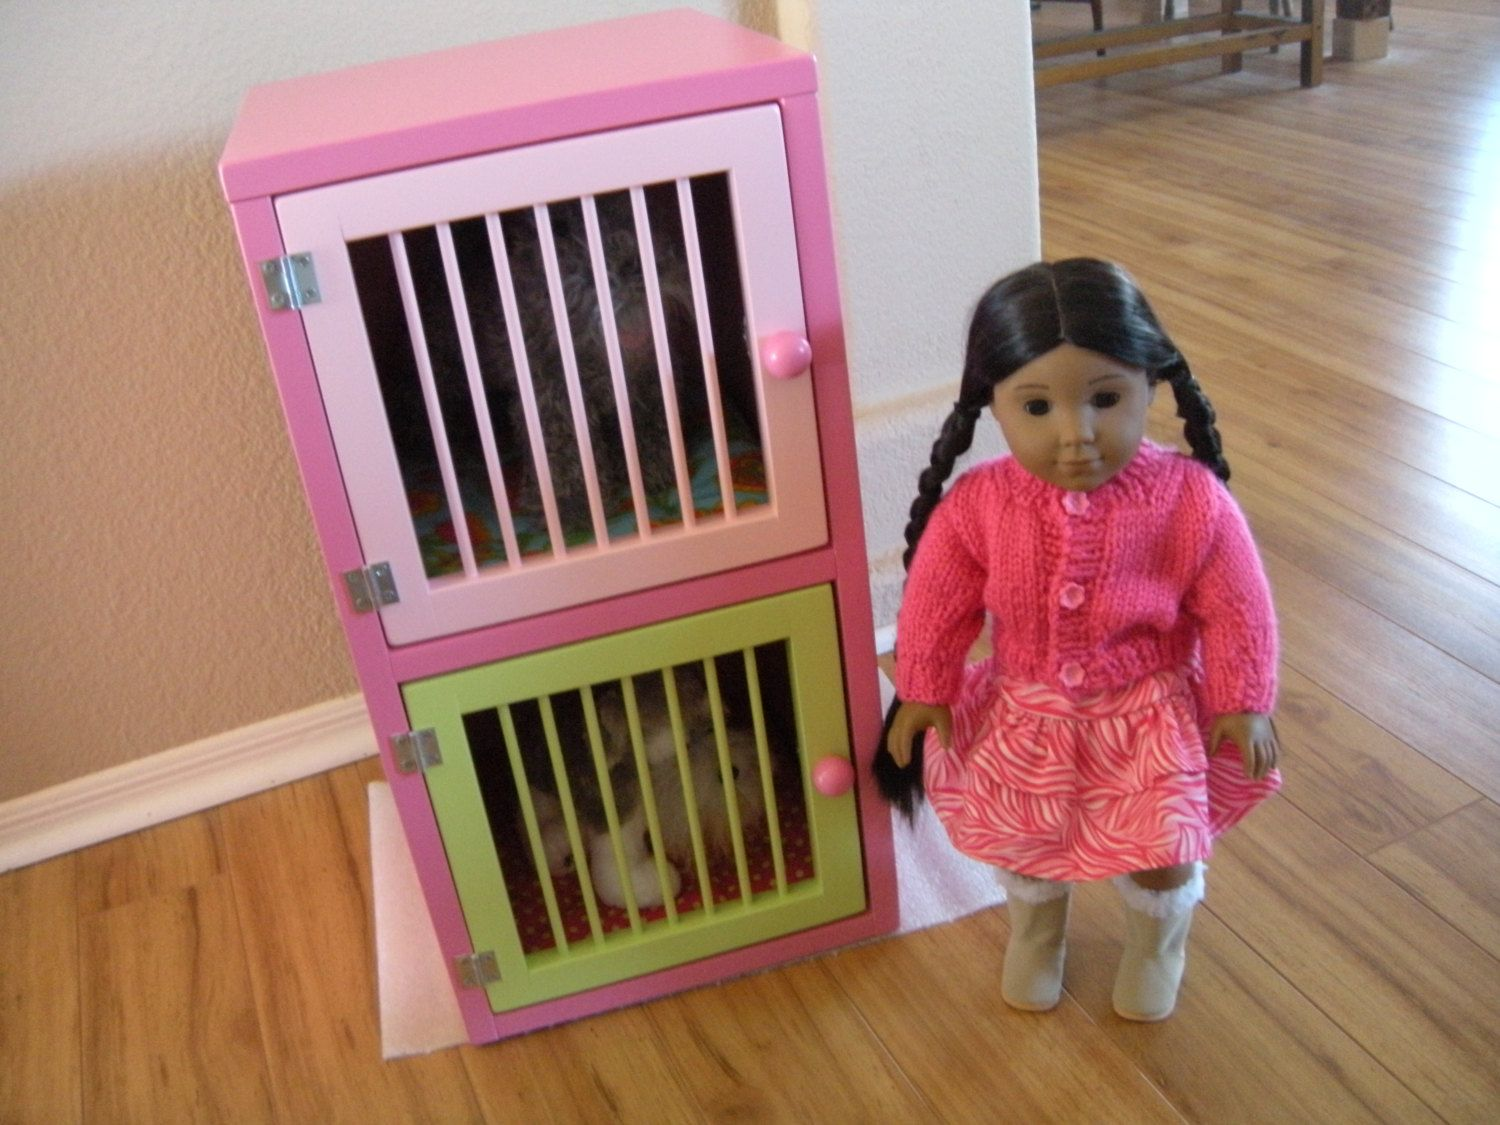 Pet boarding hutch large stack vet set pet cage for american girl doll large dogs and pets